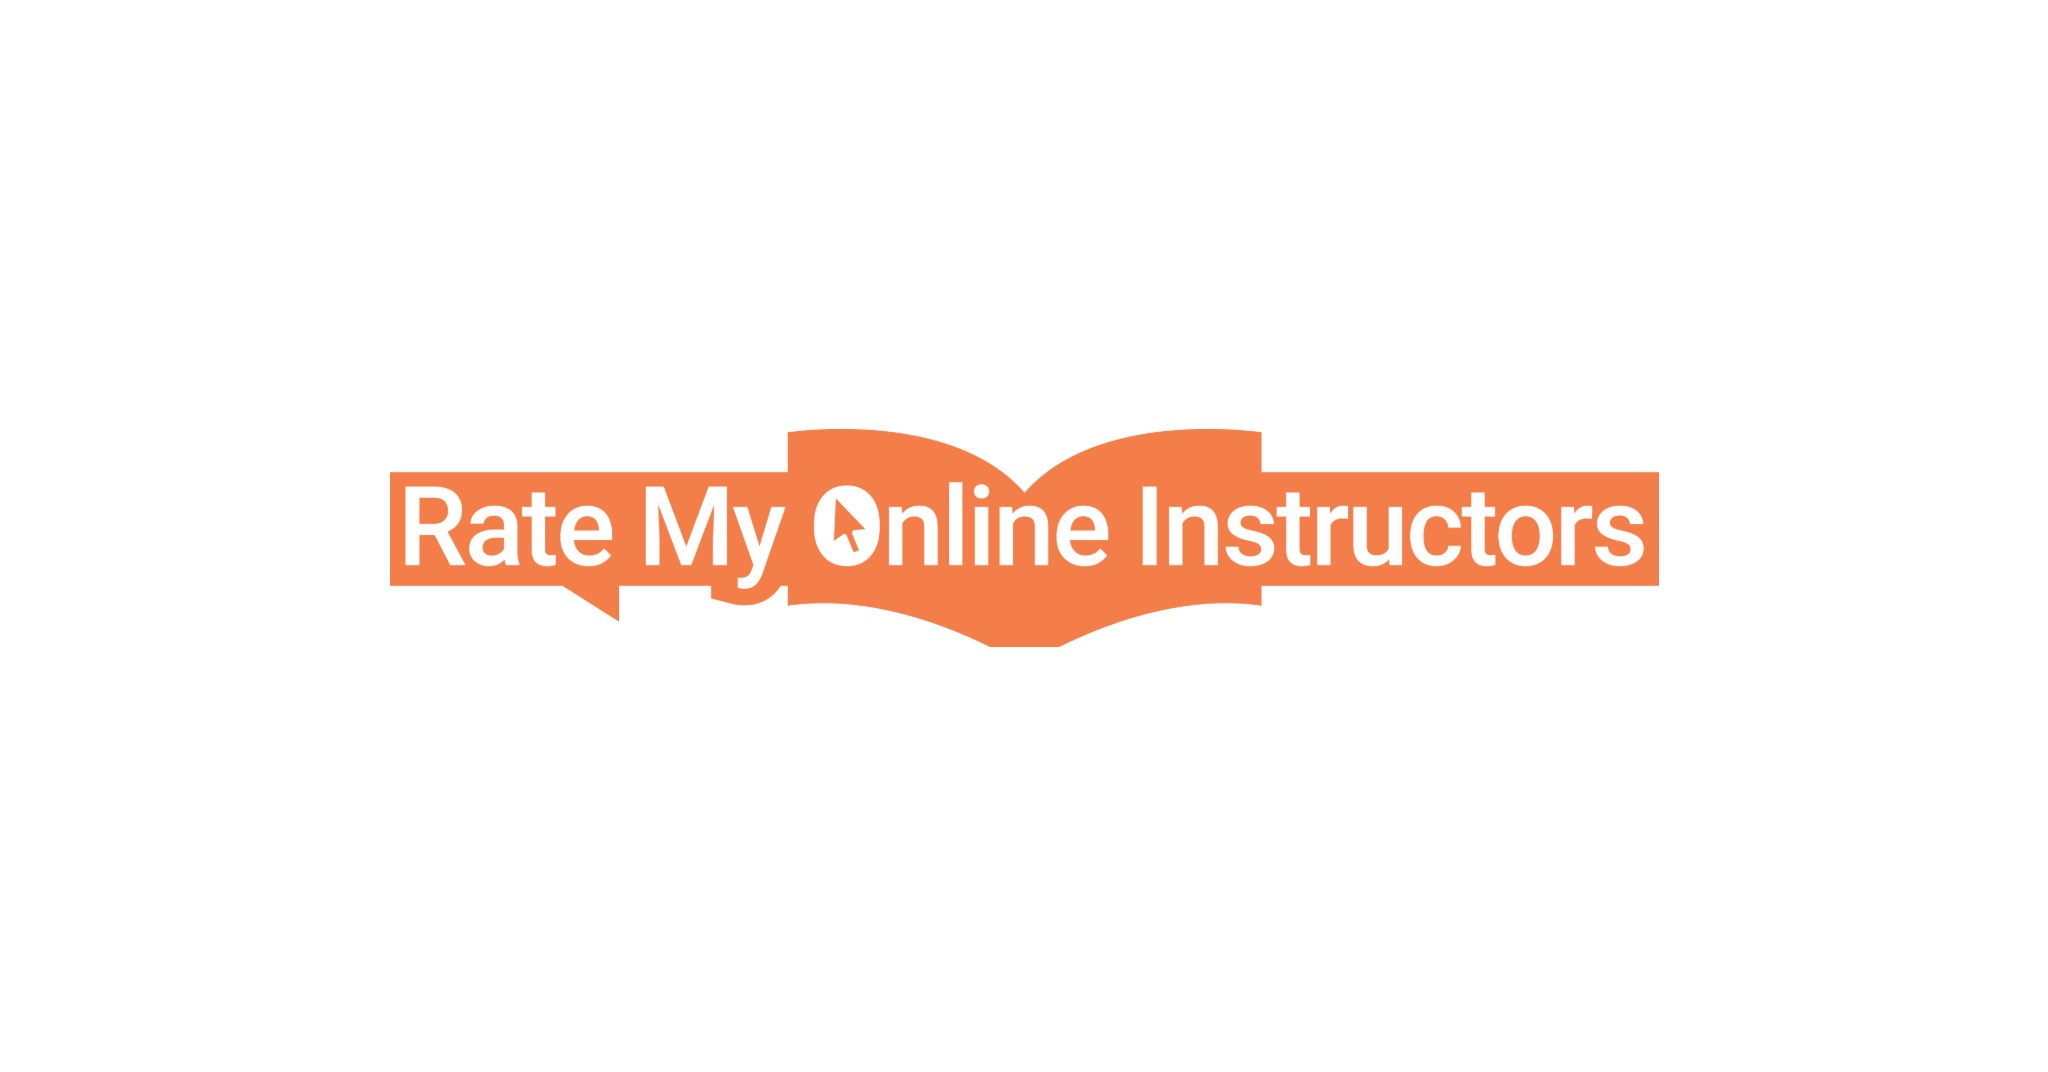 Rate My Online Instructors